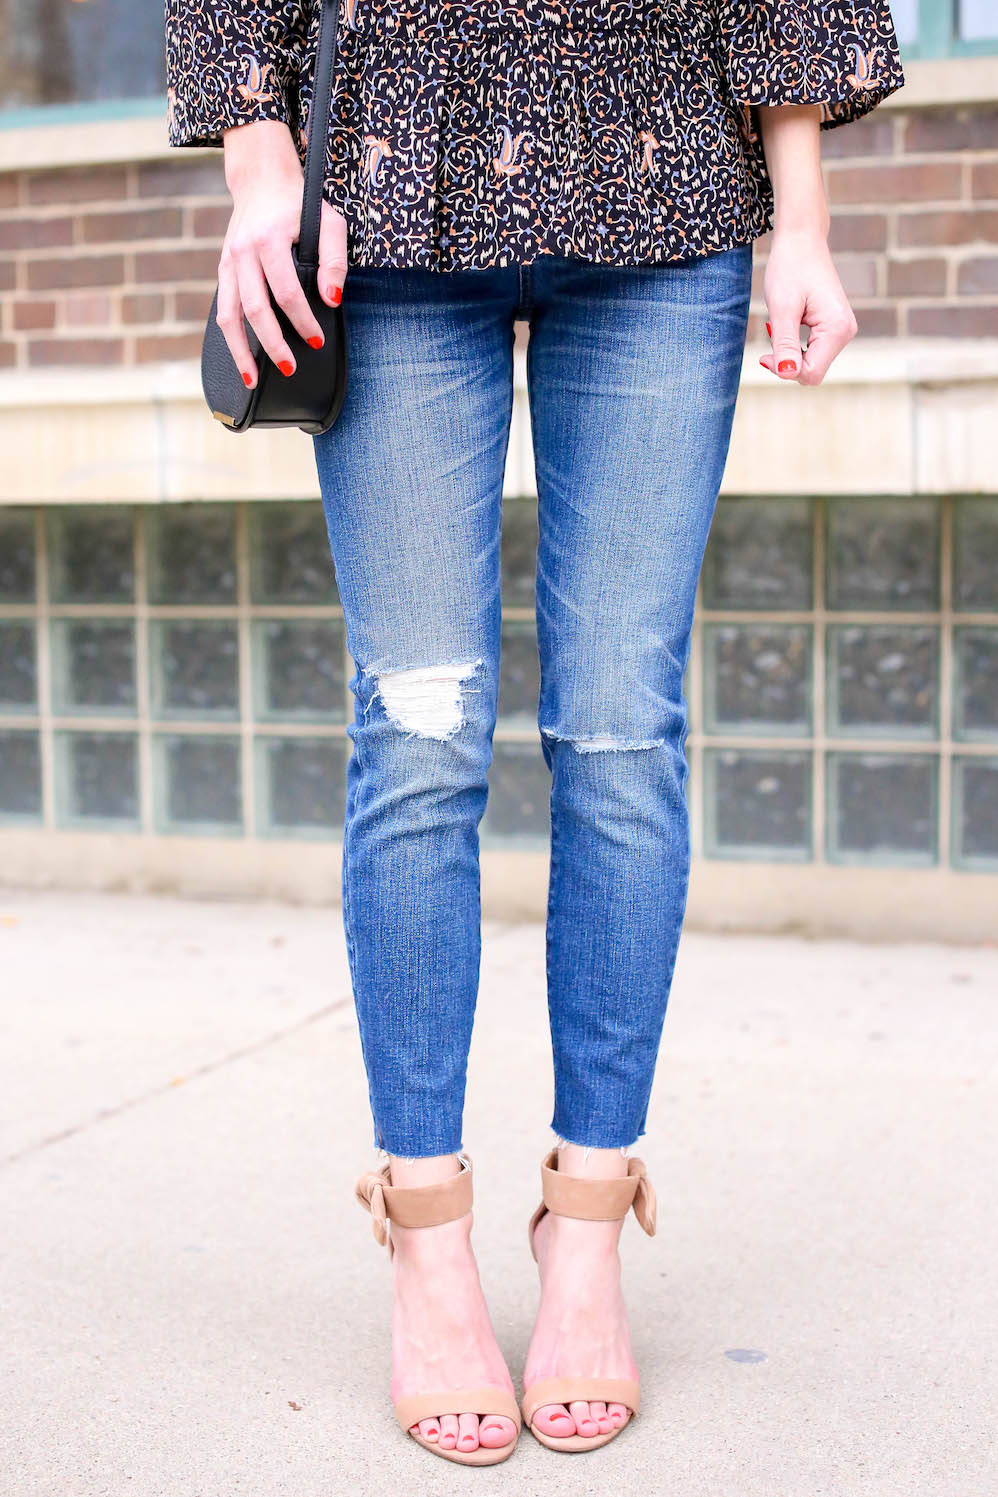 nude heels and distressed denim